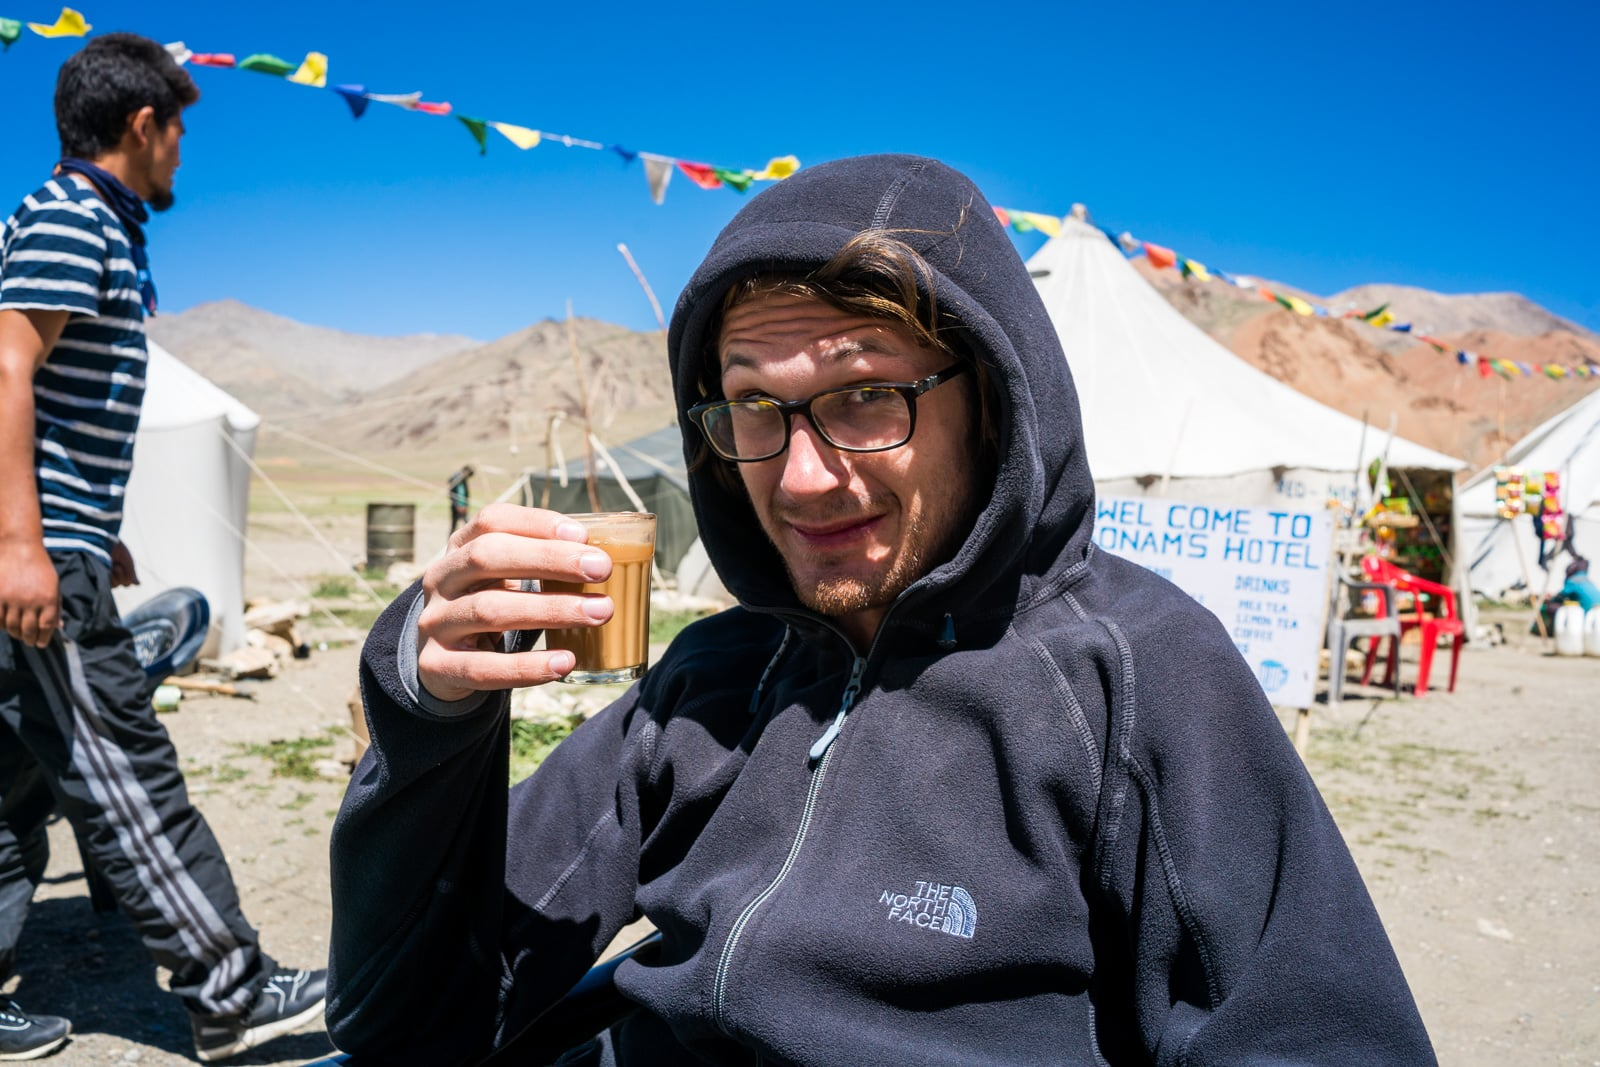 Hitchhiking the Leh - Manali highway in India - Sipping chai at a roadside tent camp - Lost With Purpose travel blog